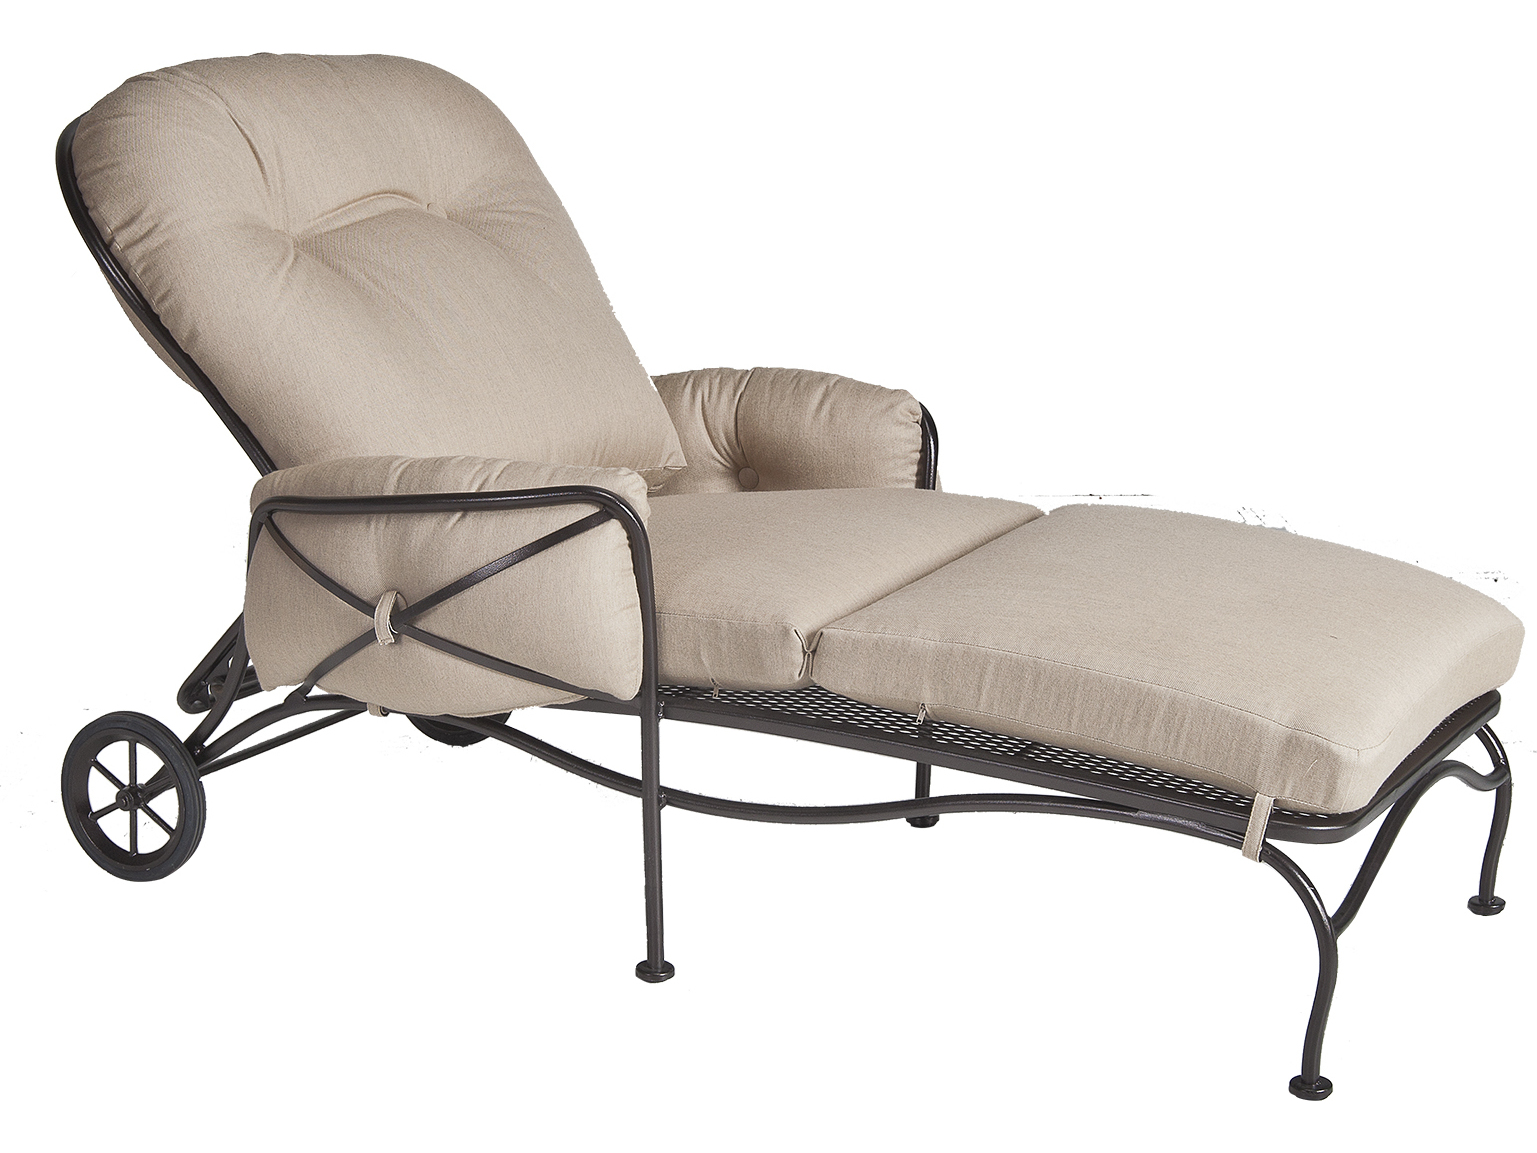 Ow lee cambria wrought iron adjustable chaise 17138 ch for Black wrought iron chaise lounge